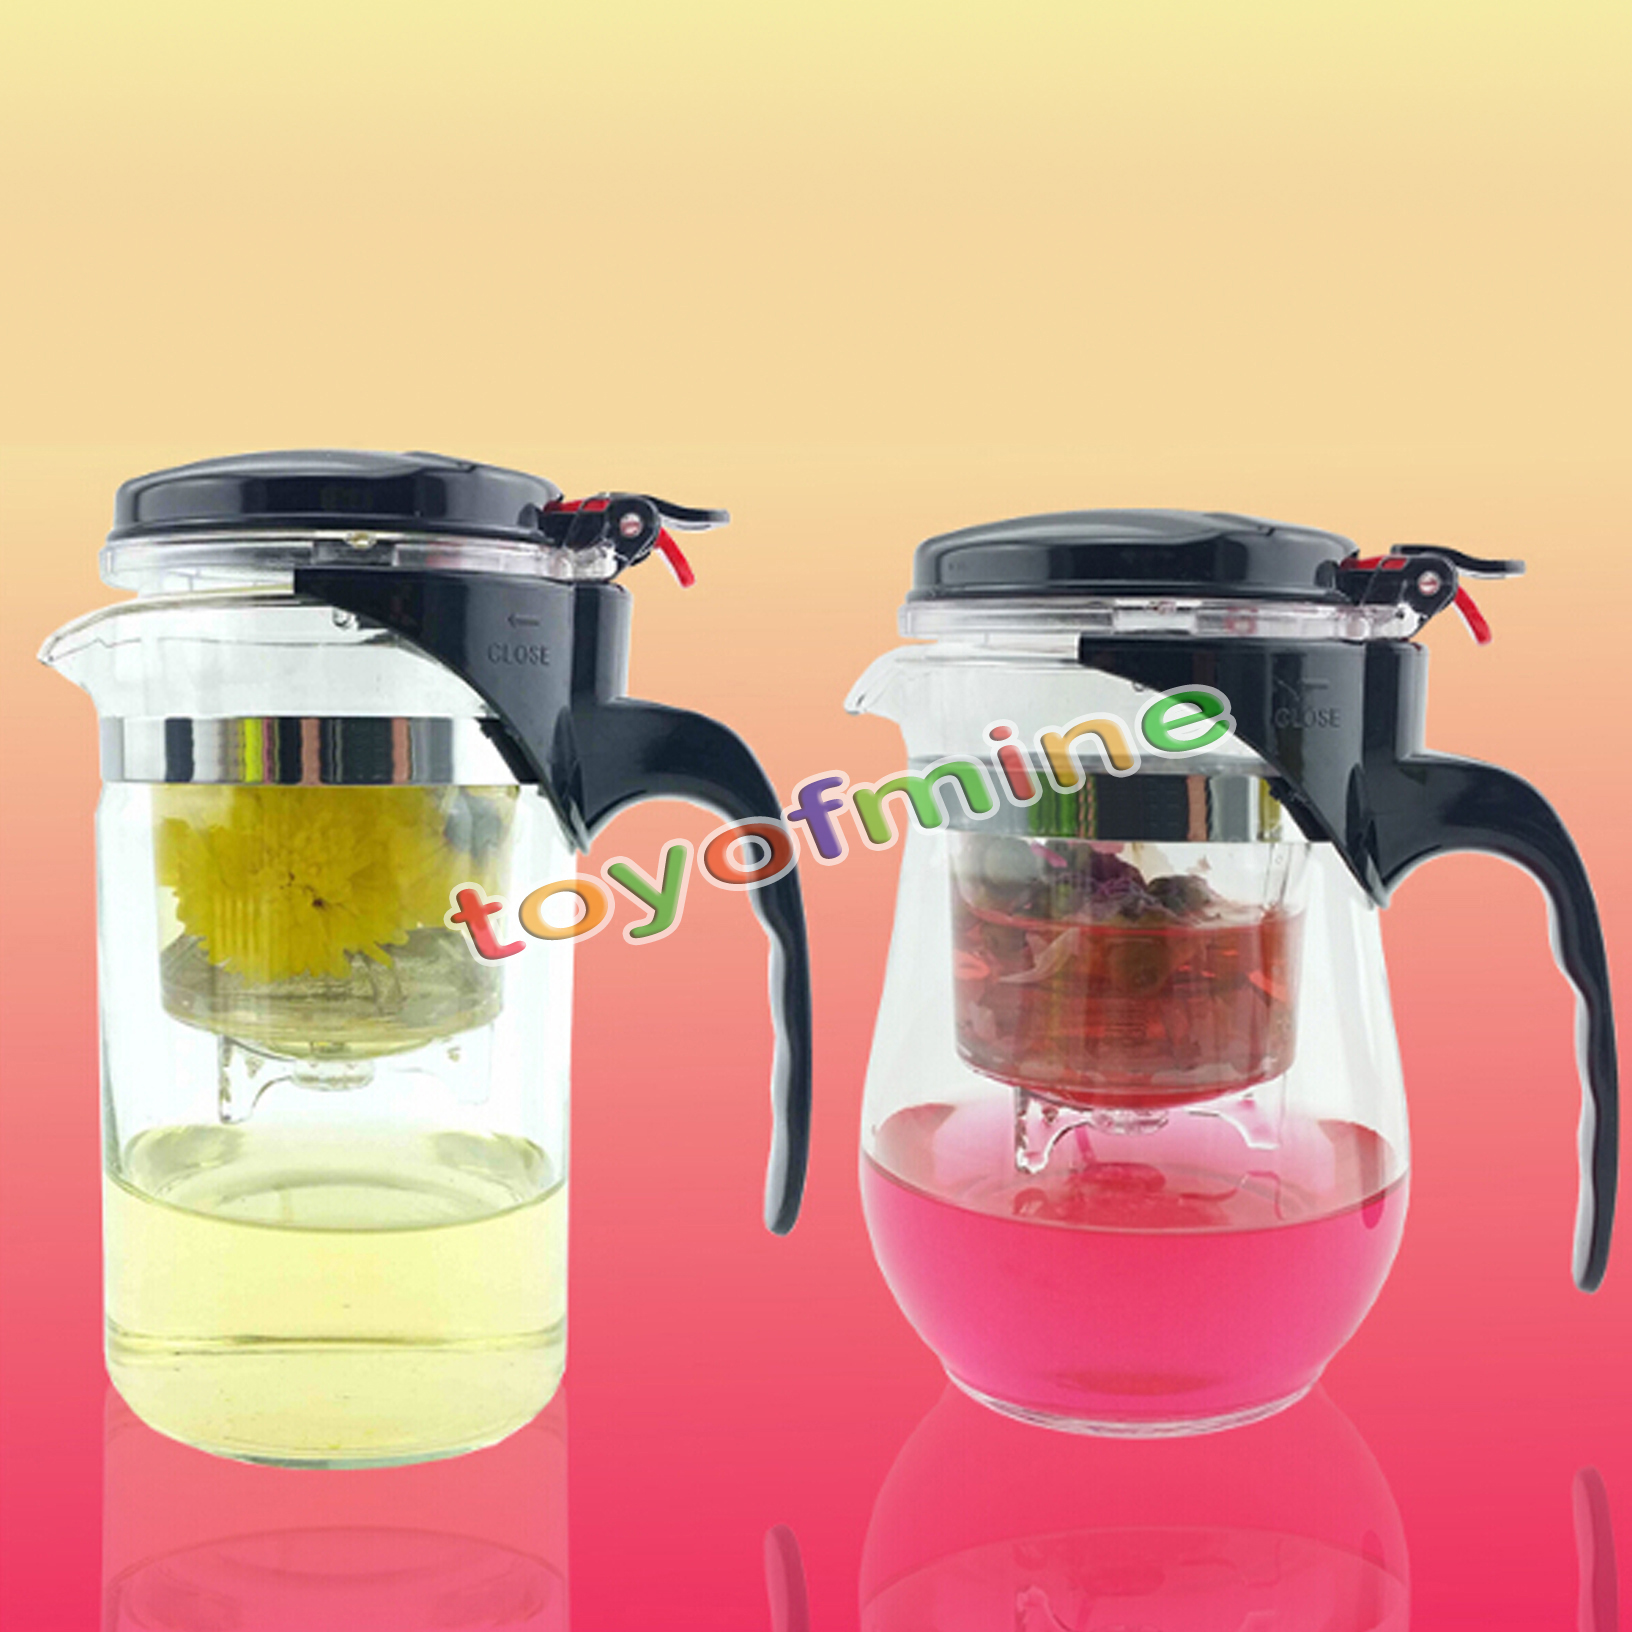 Kettle Style Coffee Maker : 500ml Style A or B Heat Resistant Glass Teapot Chinese Tea Set Puer Kettle Coffee Glass Maker ...